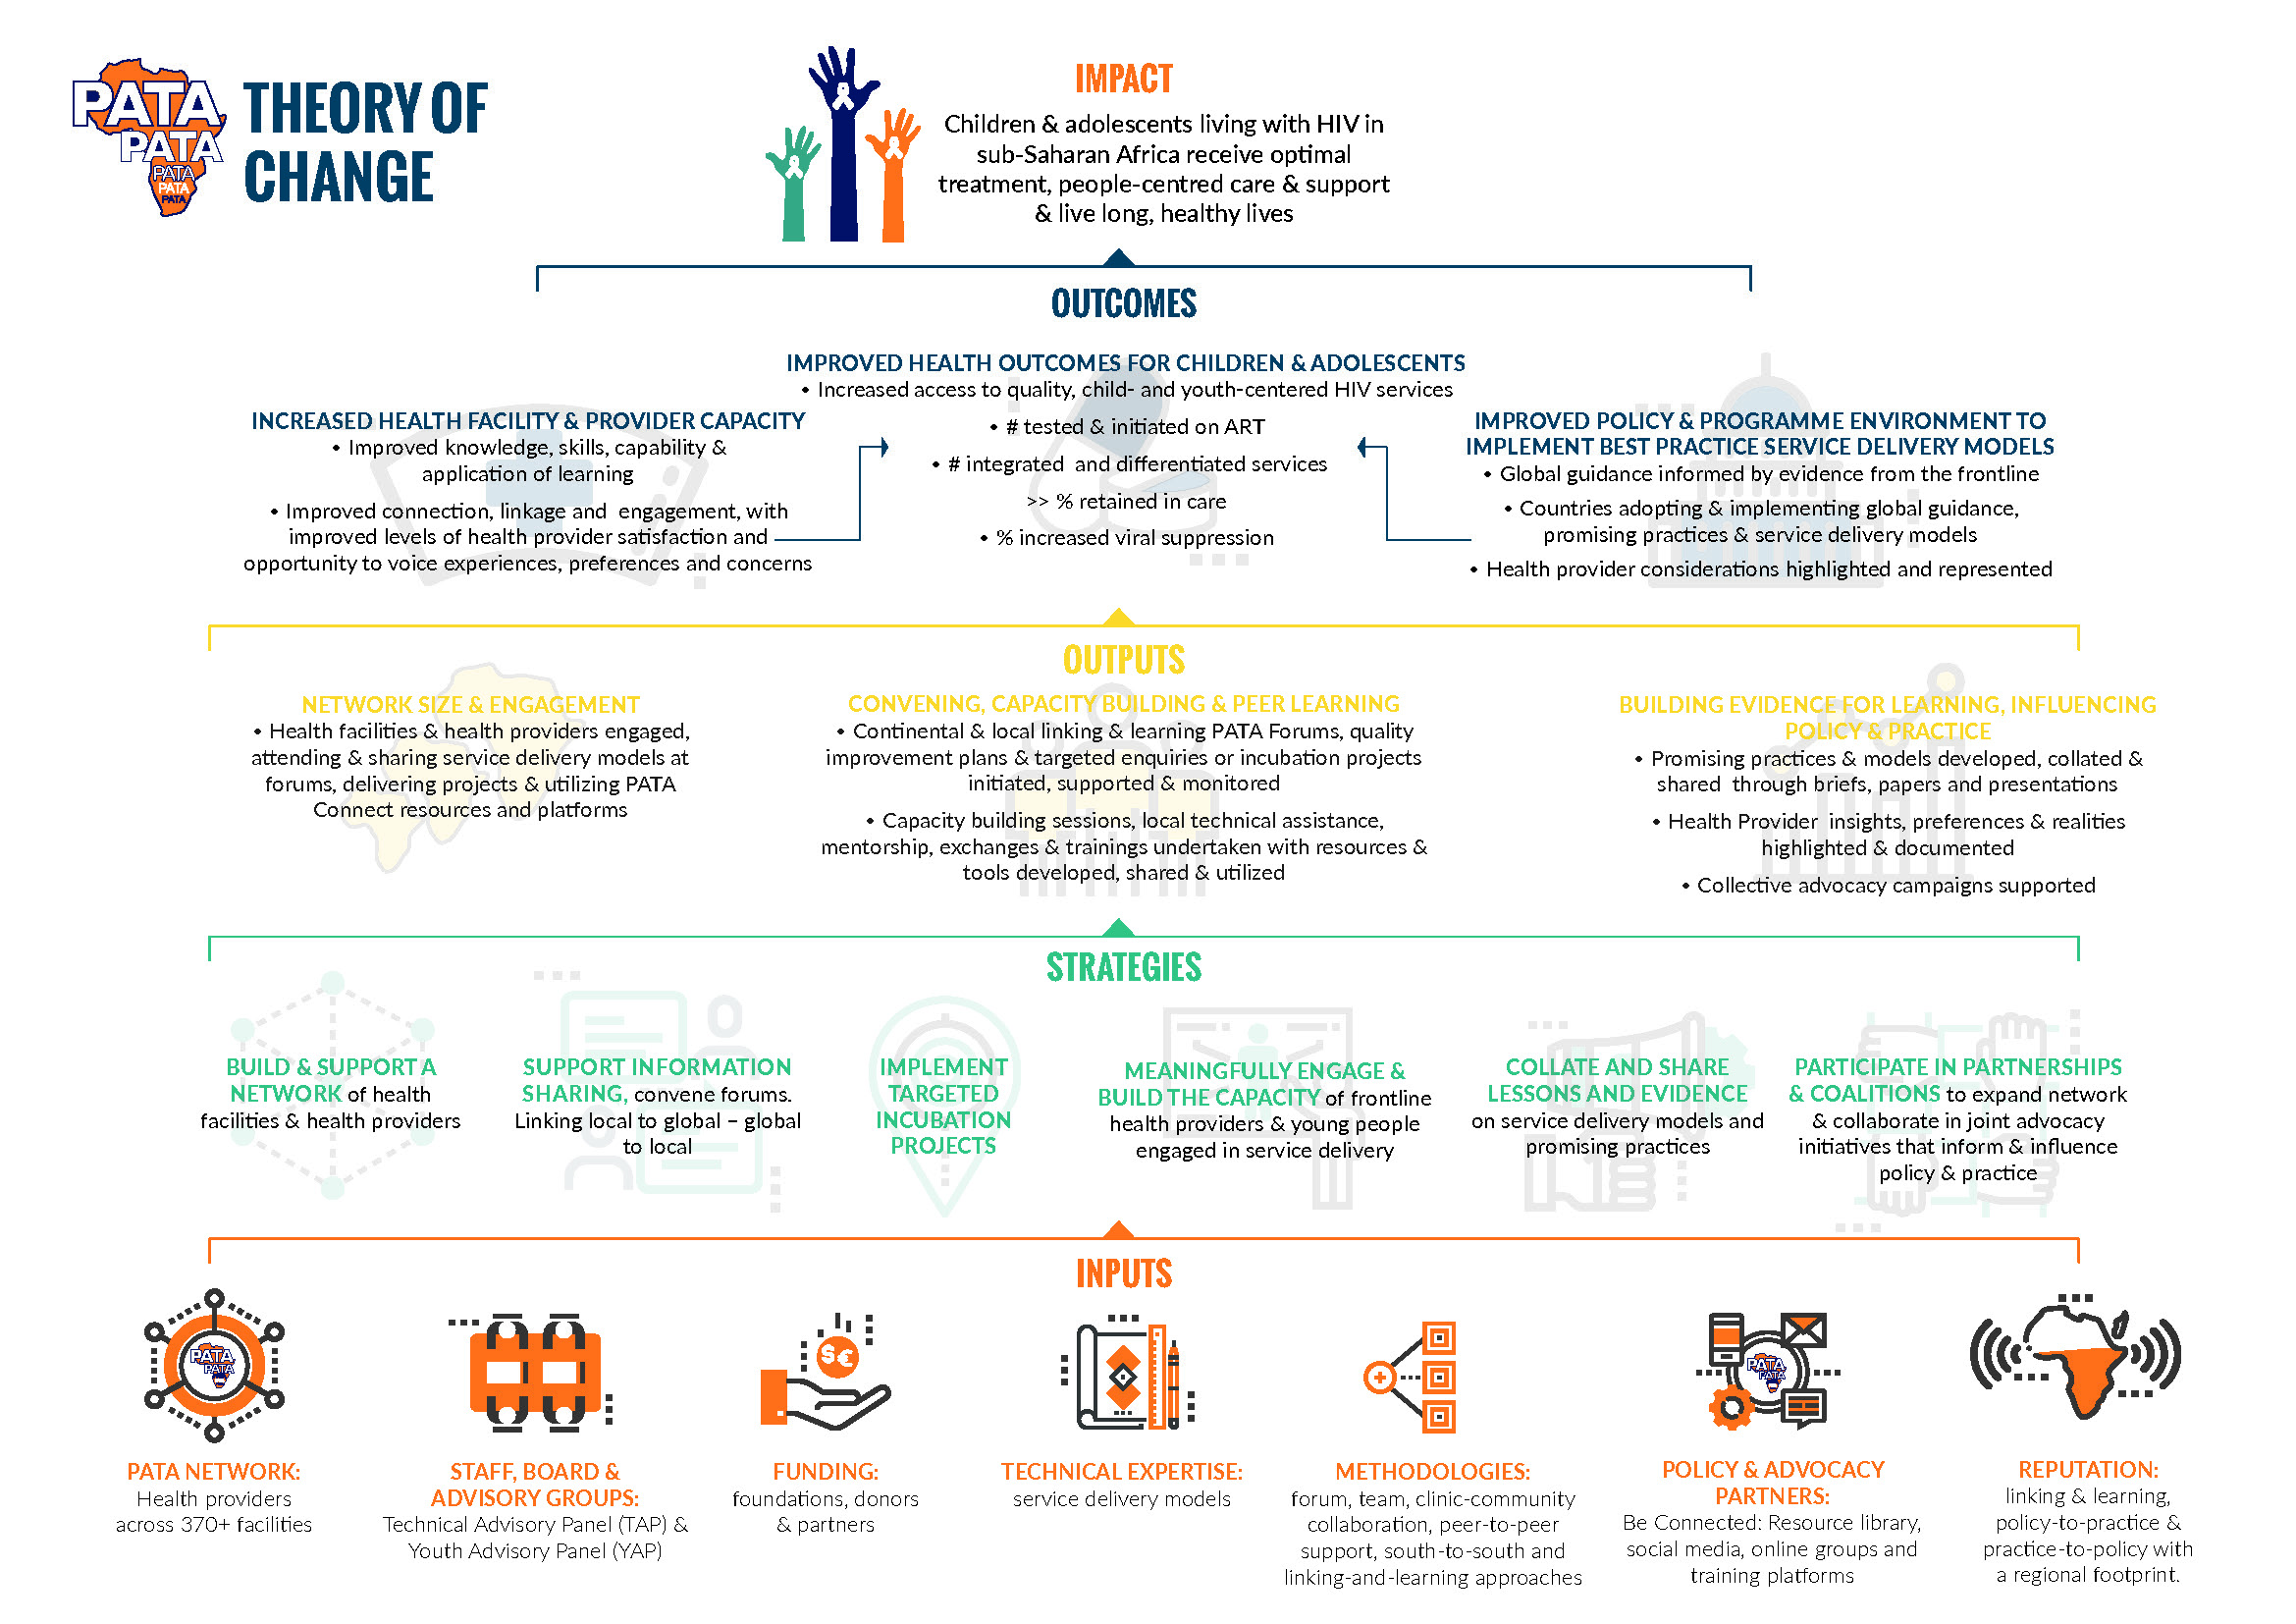 PATA - Our Theory of Change